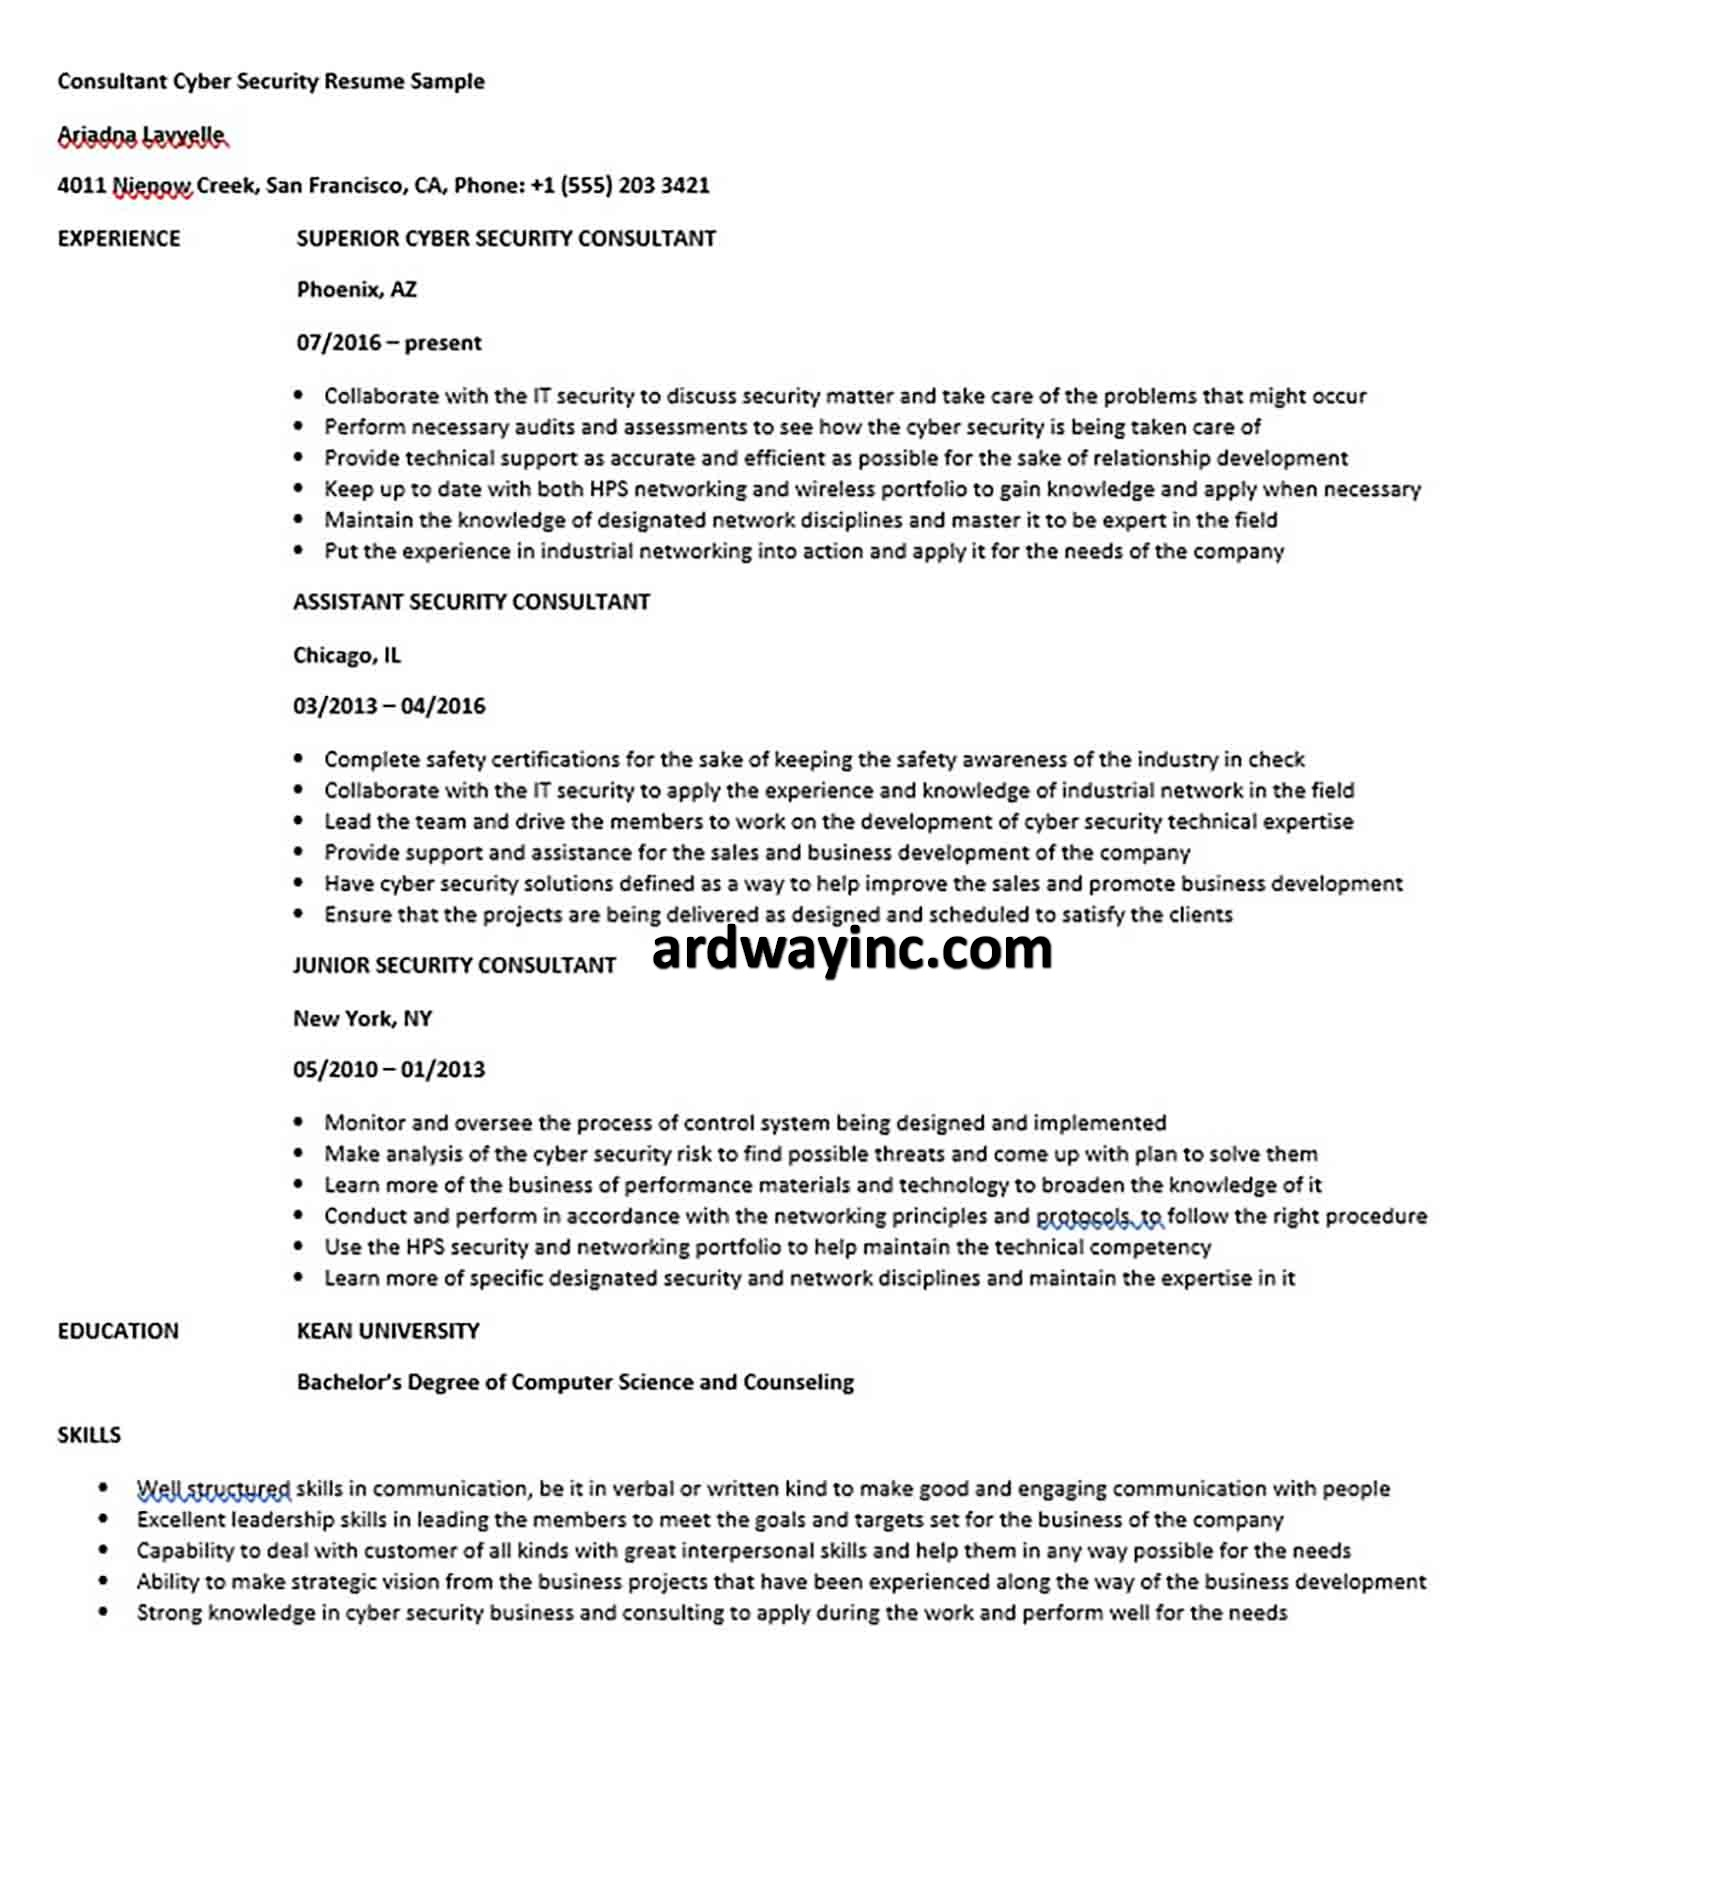 Consultant Cyber Security Resume Sample